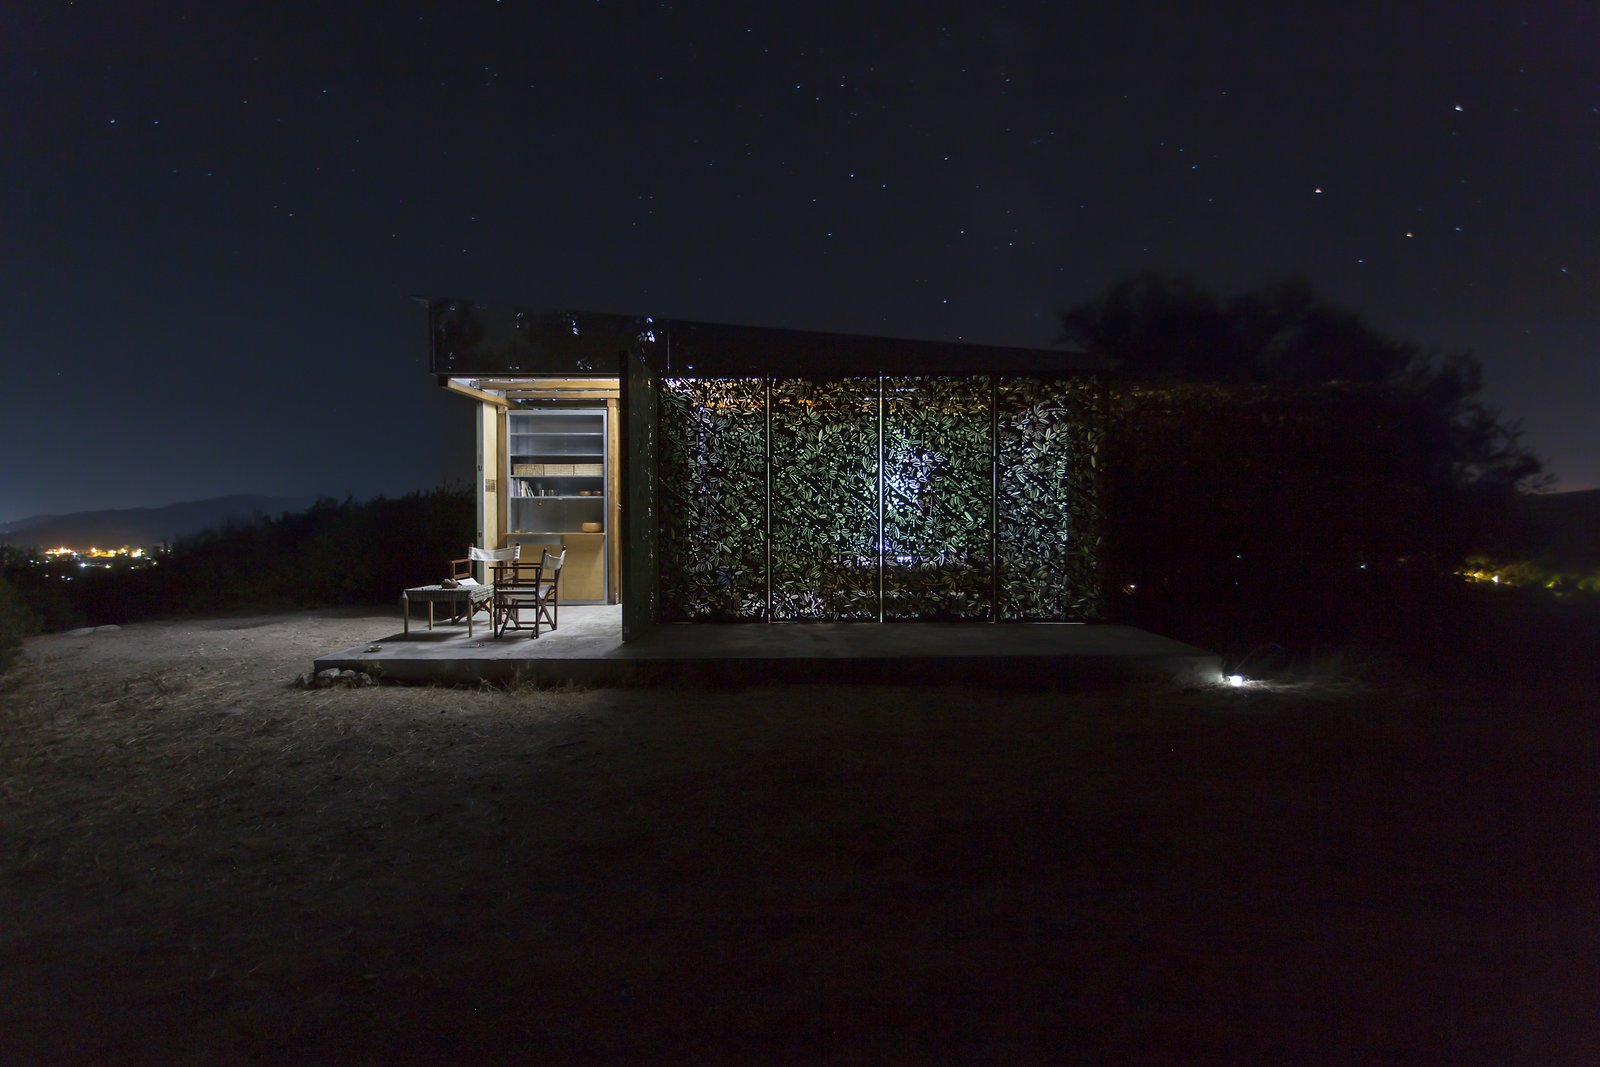 Night view Tagged: Wood Counter, Wood Cabinet, Concrete Floor, Metal Cabinet, Chair, Coffee Tables, Table, Trees, Shrubs, Small Patio, Porch, Deck, Exterior, Metal, Folding Door Type, Metal Counter, Living Space, Bed, Accent Lighting, Garden, Desert, and Hardscapes.  The Olive Tree House by Eva Sopeoglou